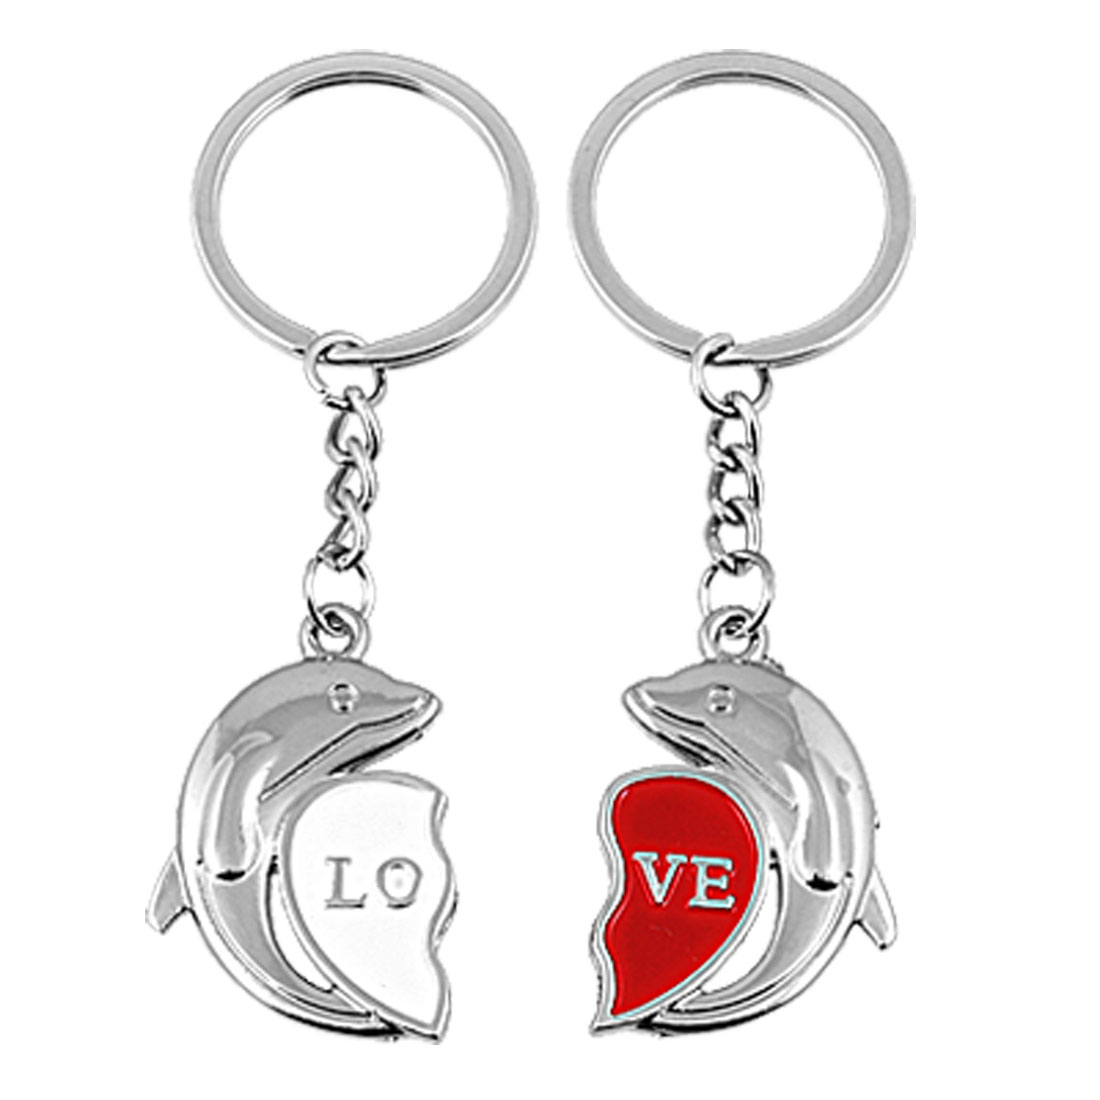 2 Pcs Couple Dolphin Keychain Love Heart Key Chain